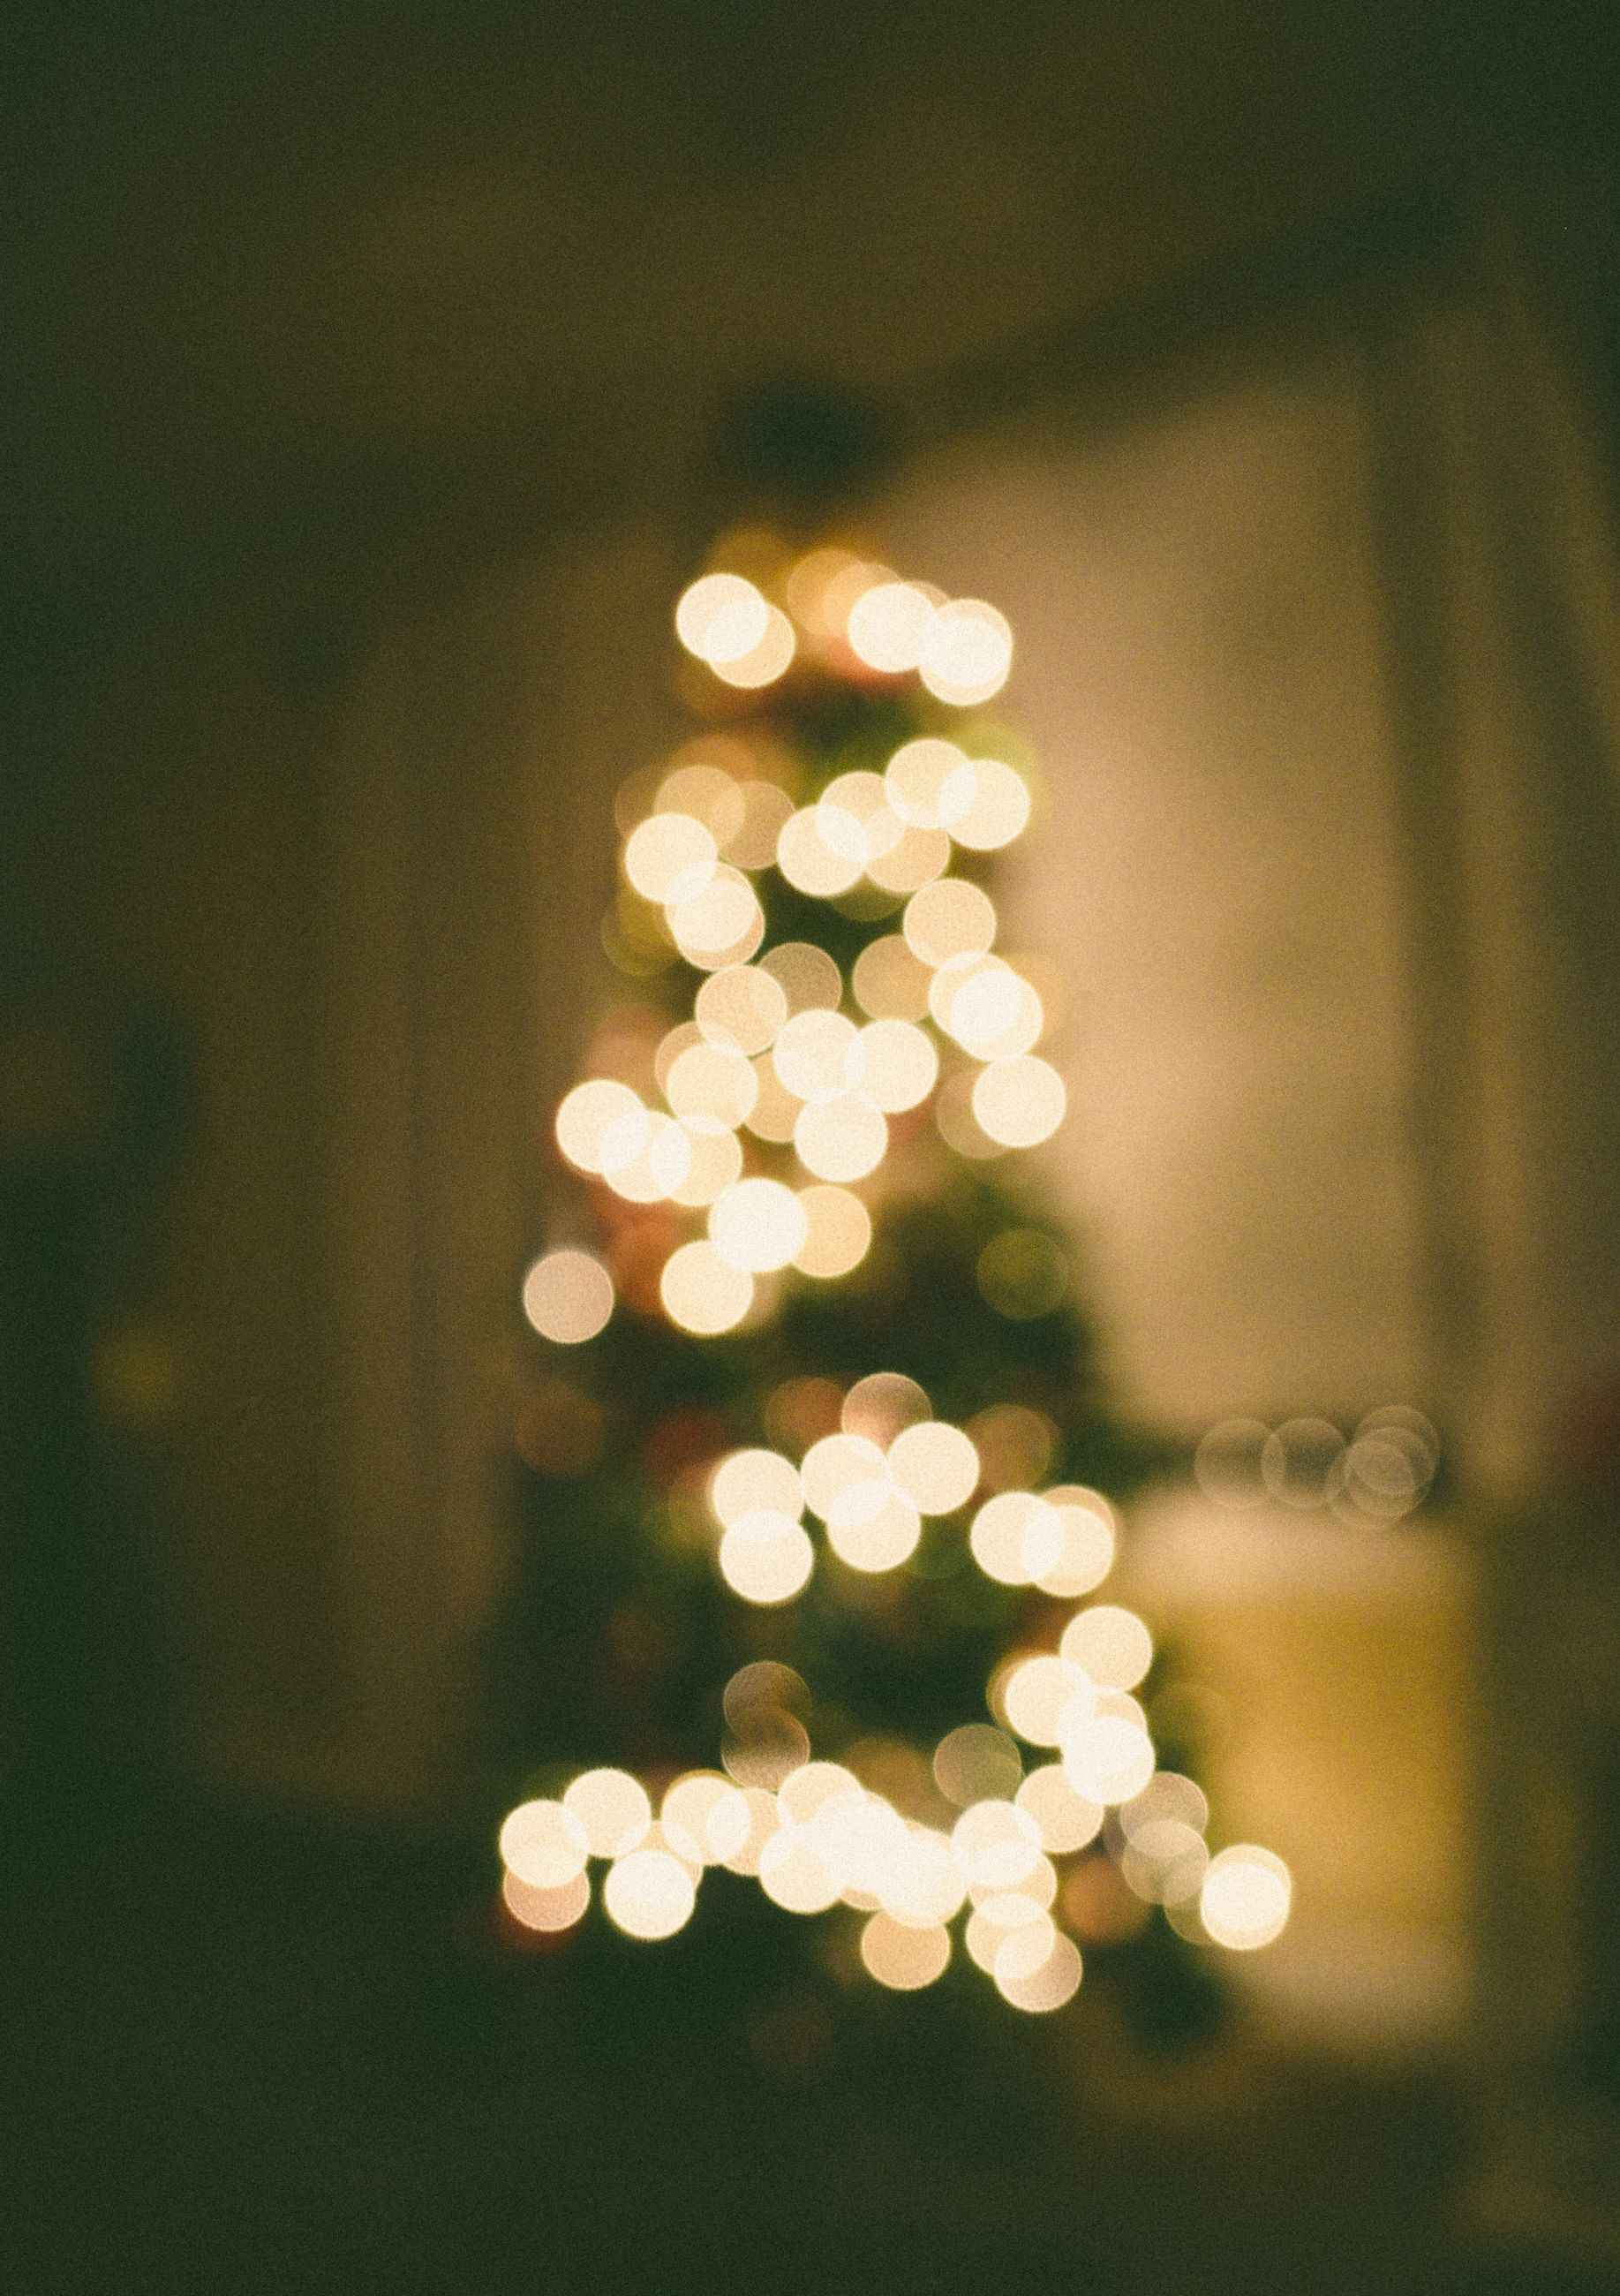 illuminated, christmas, holiday, celebration, defocused, christmas decoration, christmas lights, decoration, no people, christmas tree, night, lighting equipment, glowing, lens flare, close-up, tree, focus on foreground, geometric shape, shape, light